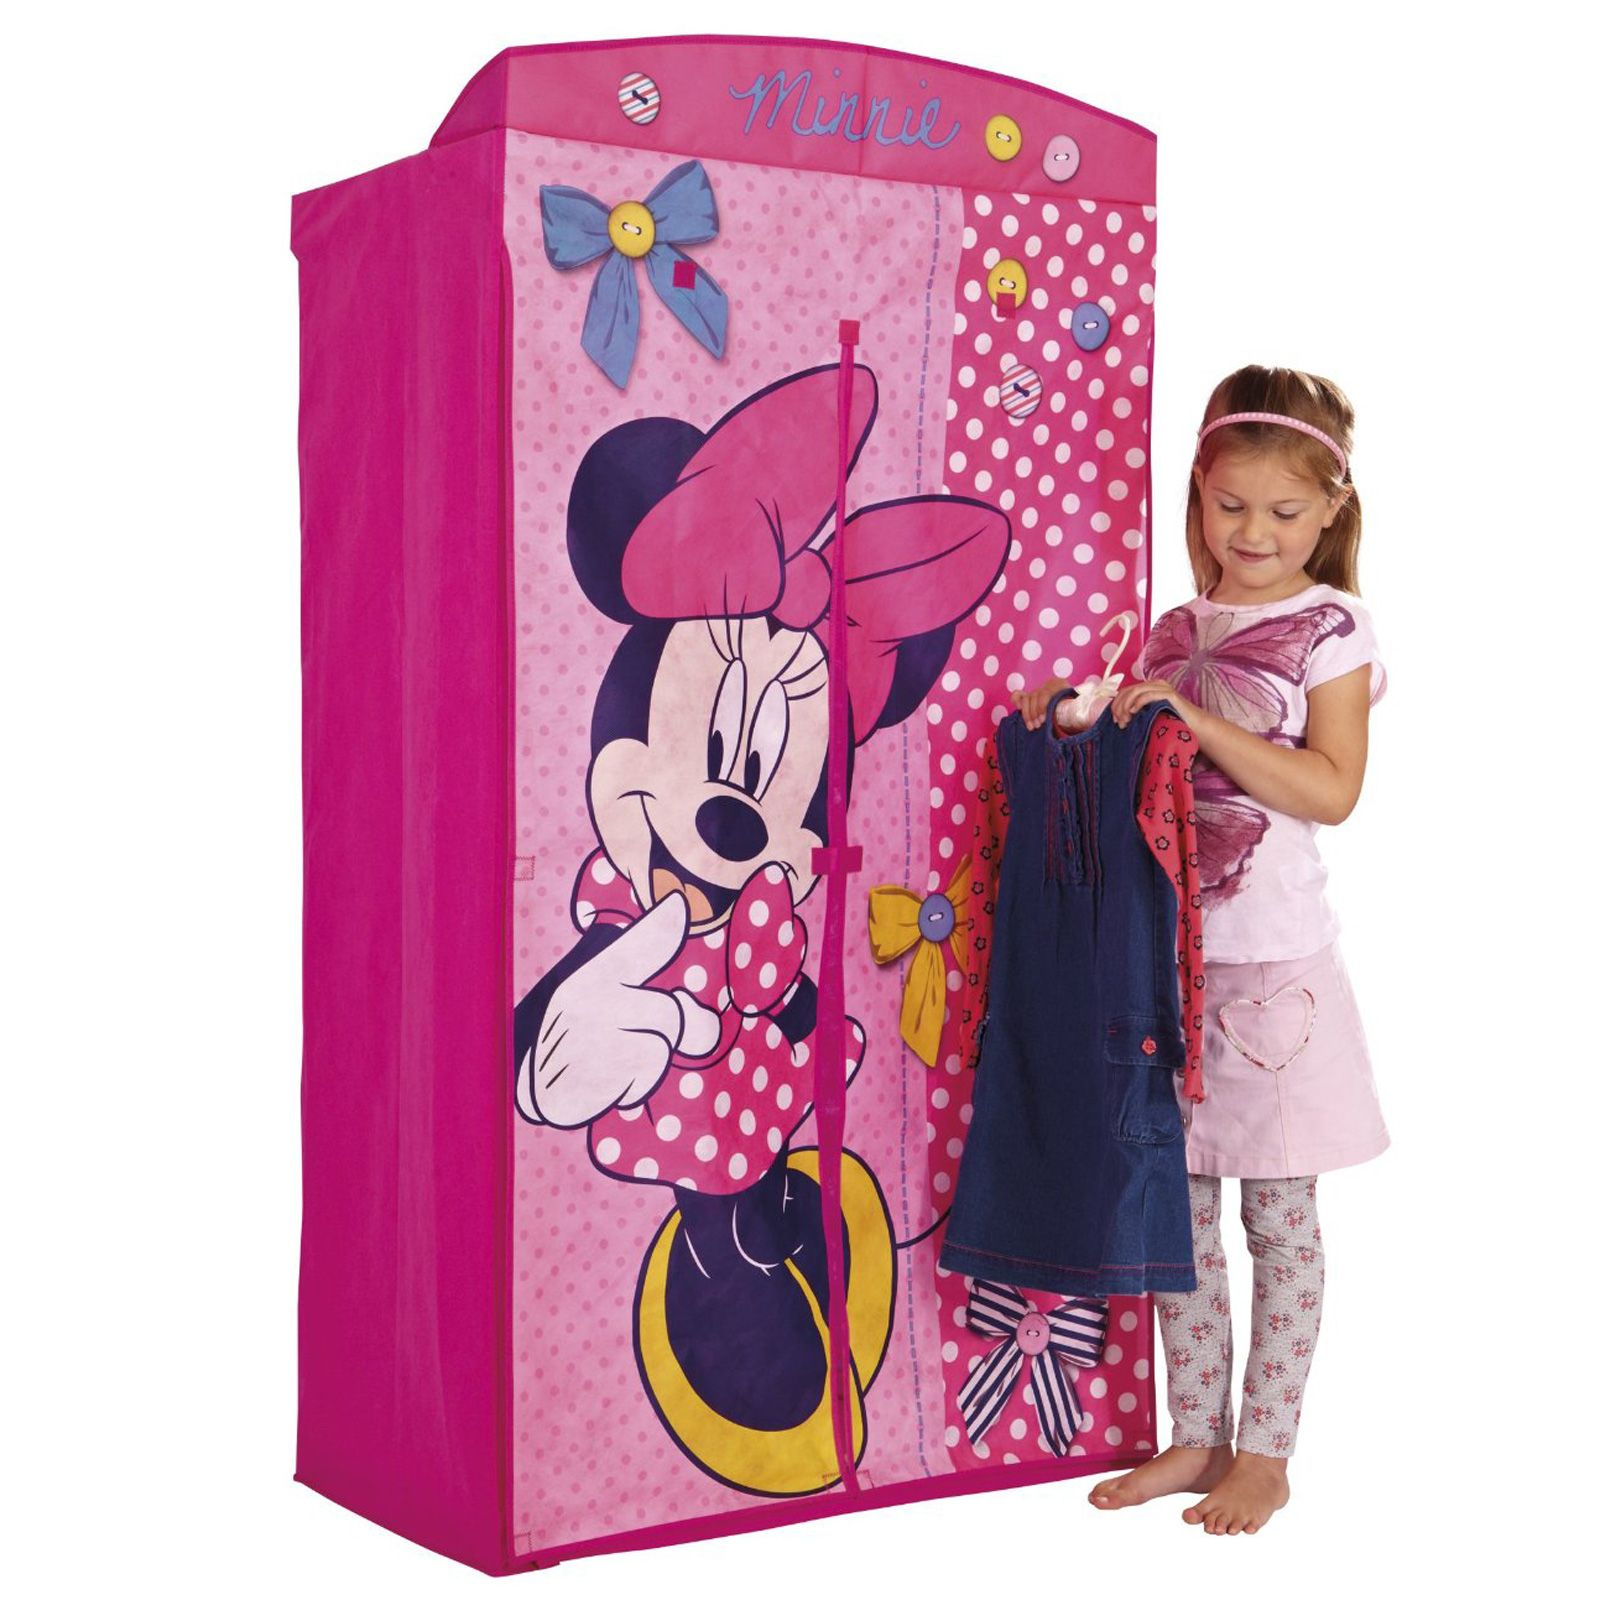 Adult Minnie Mouse Furniture